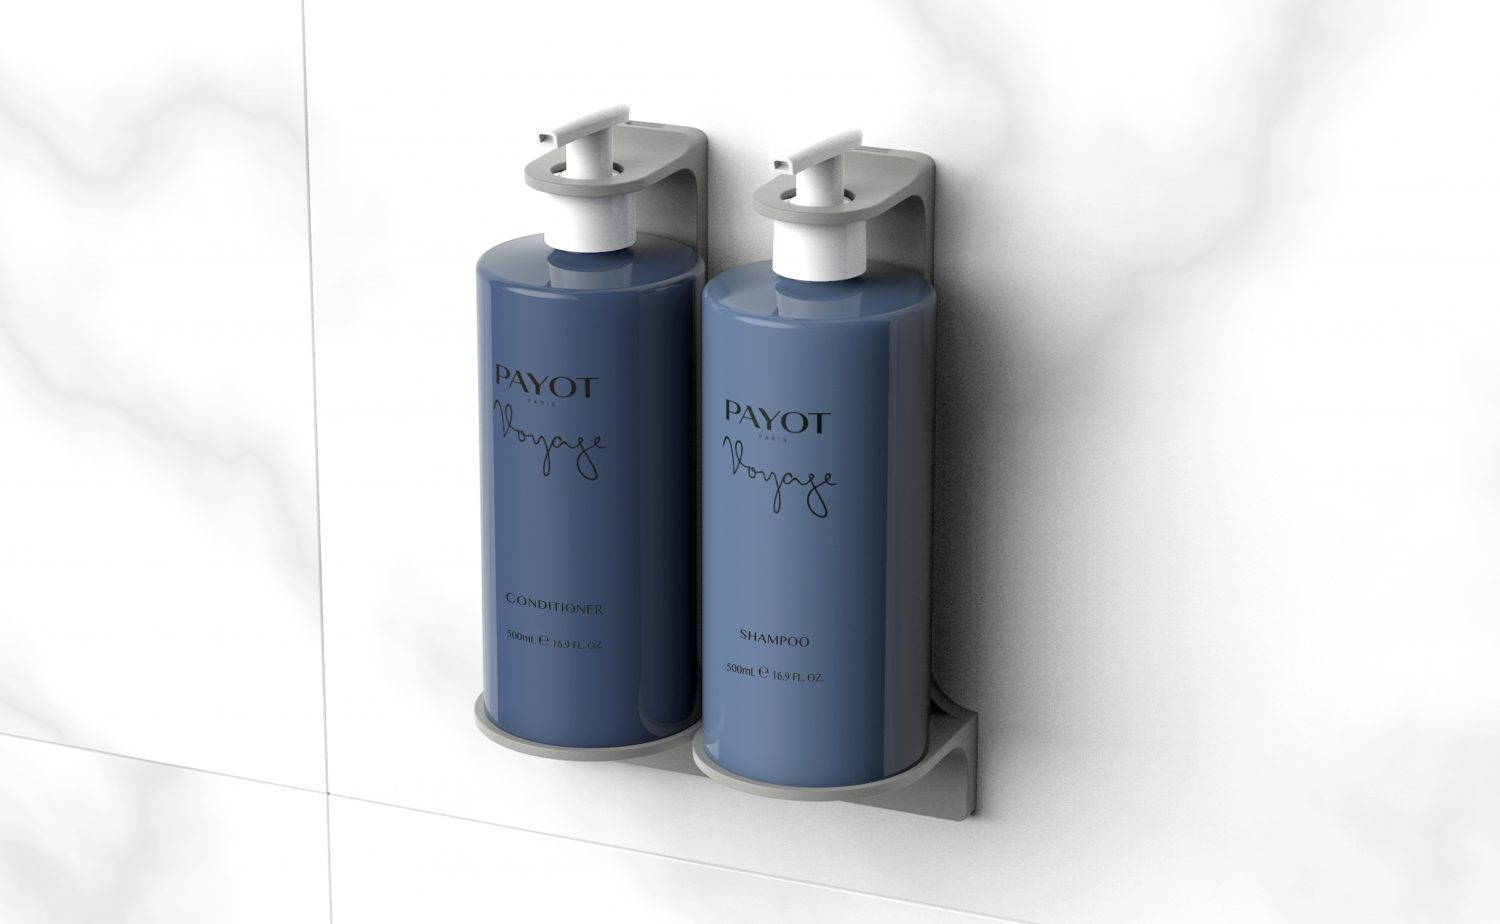 PAYOT Voyage - Sustainable Bathroom Amenities in Refillable Dispenser